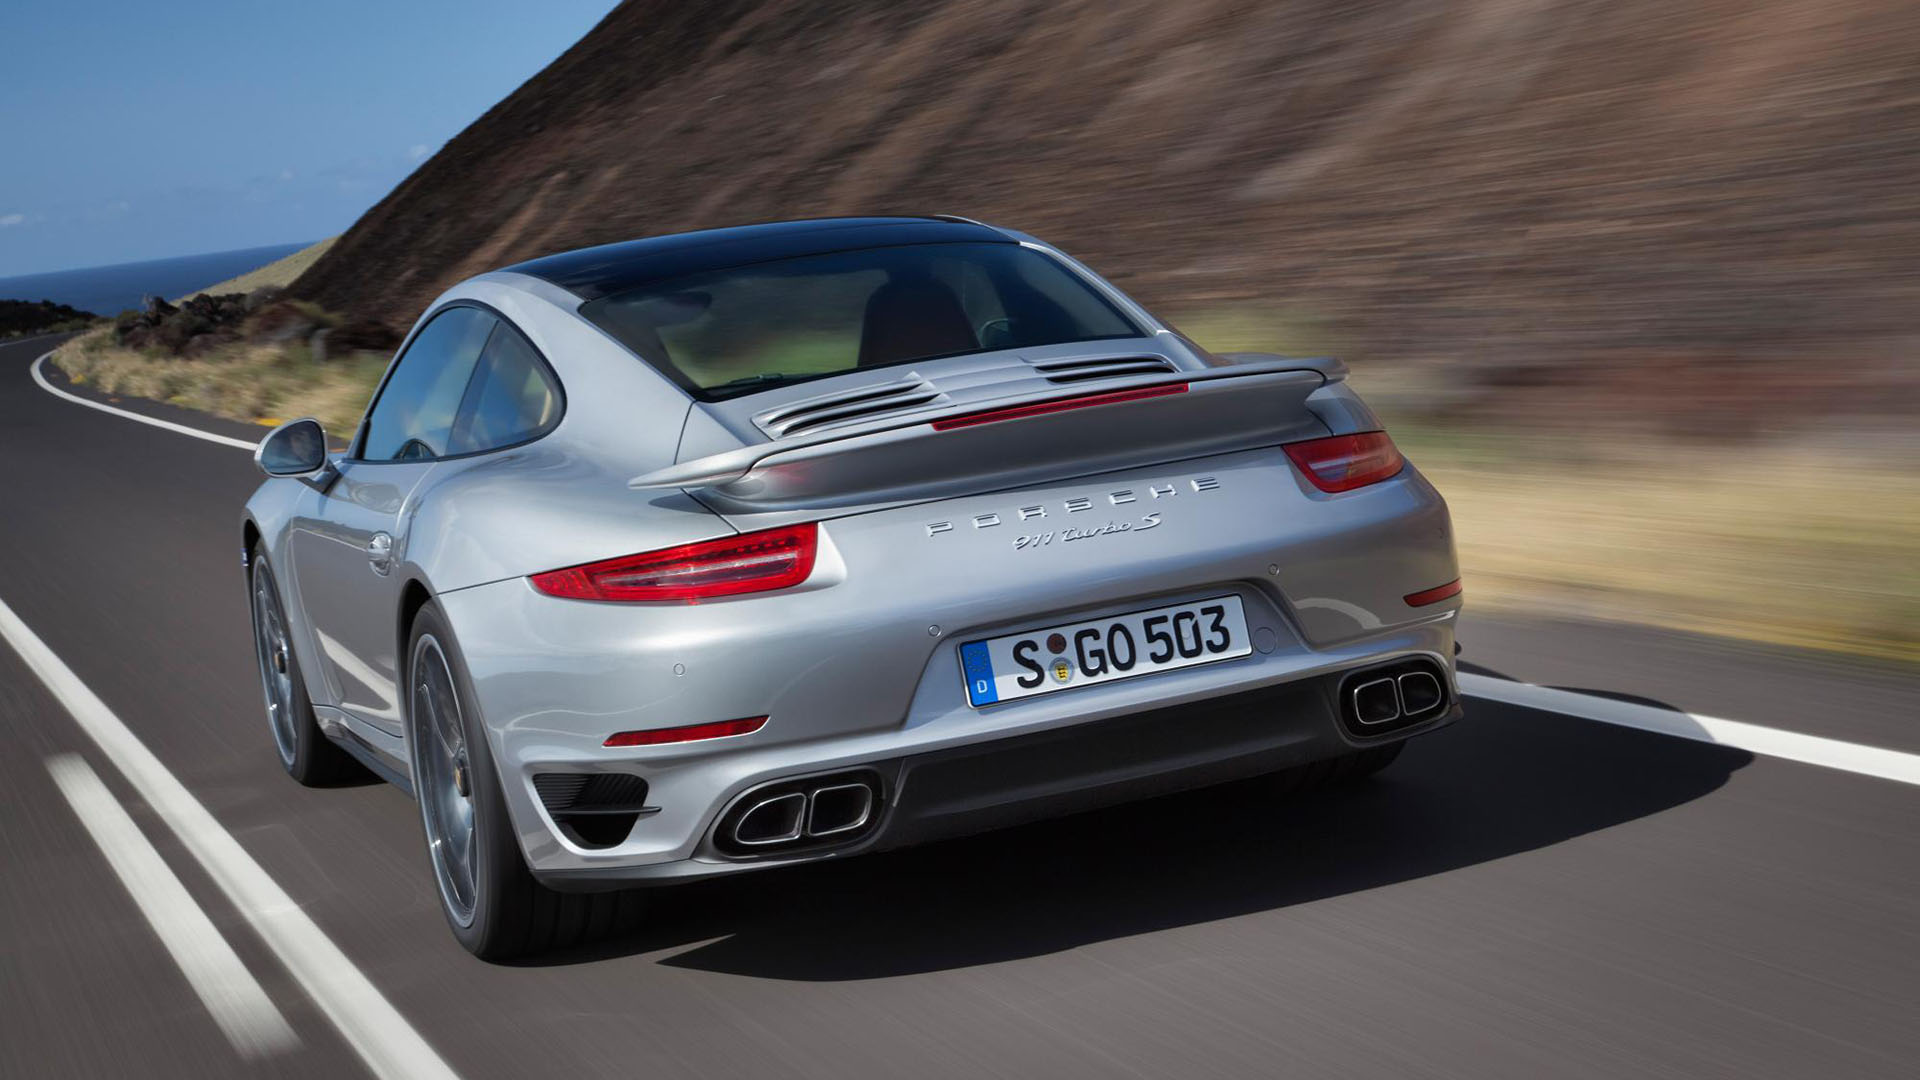 Porsche 911 Turbo Wallpapers HD